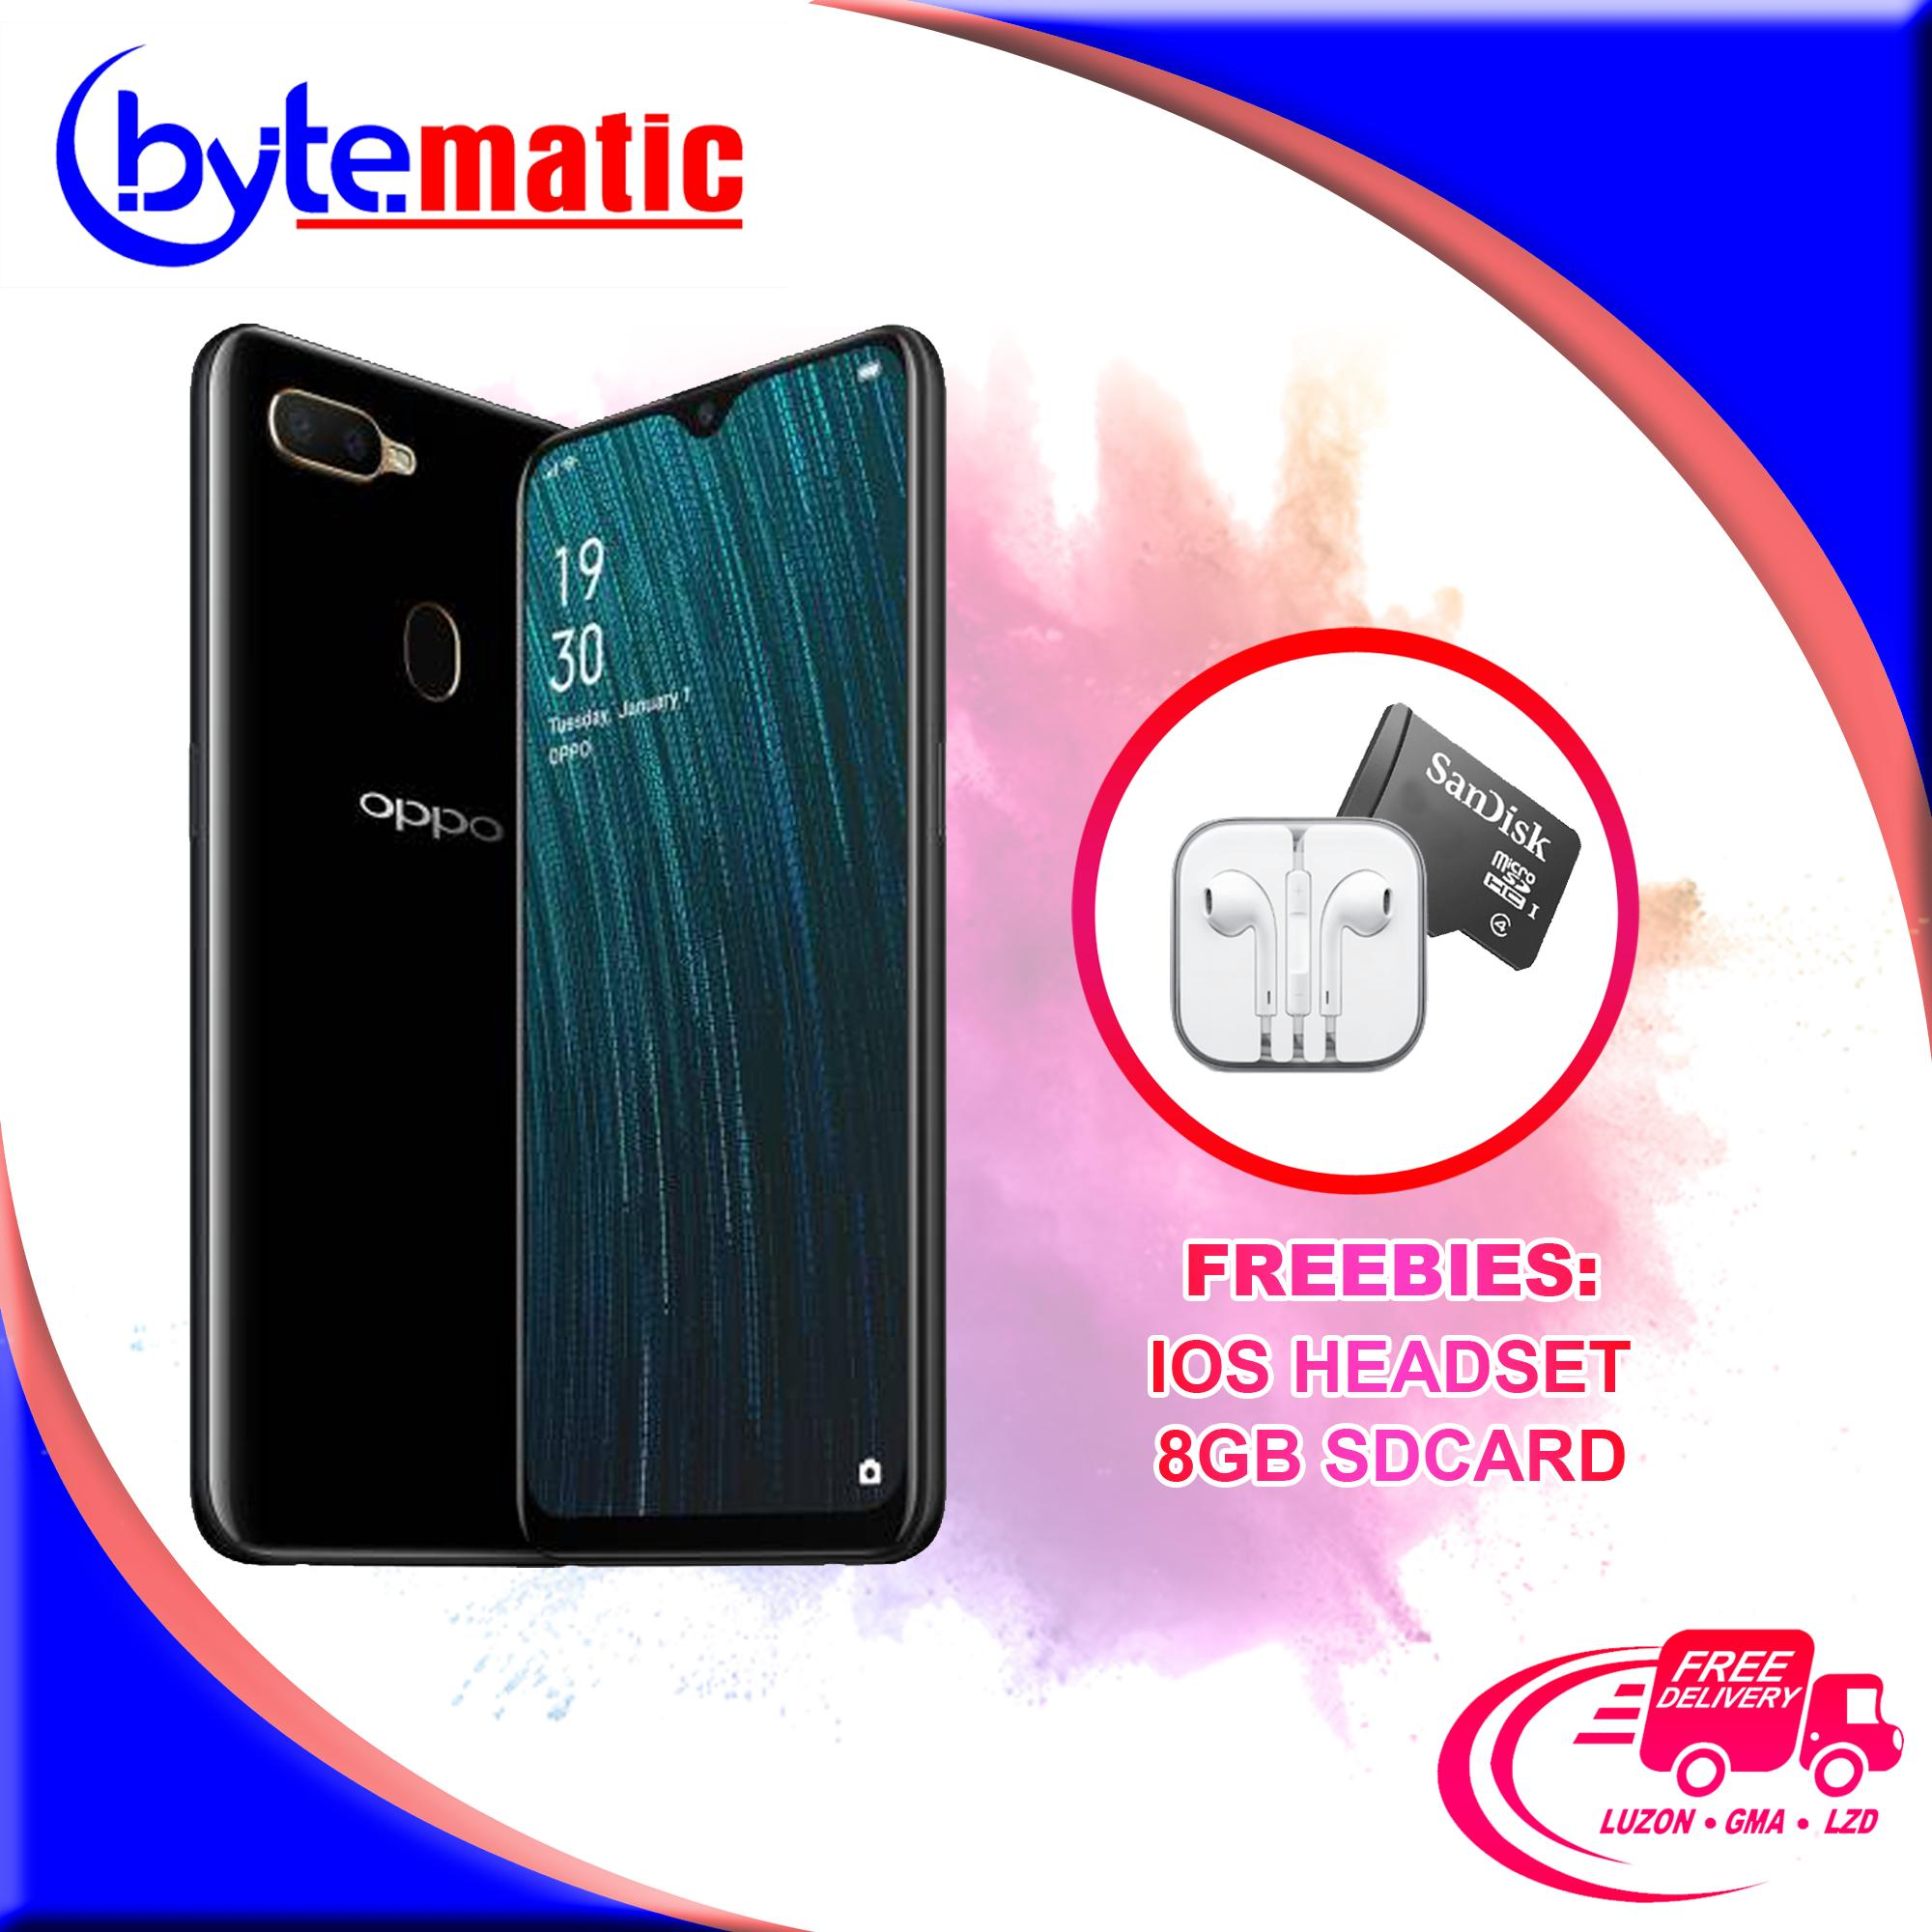 Oppo A5s (3GB RAM / 32GB ROM) with FREE HSIOS and 8GB SDCARD